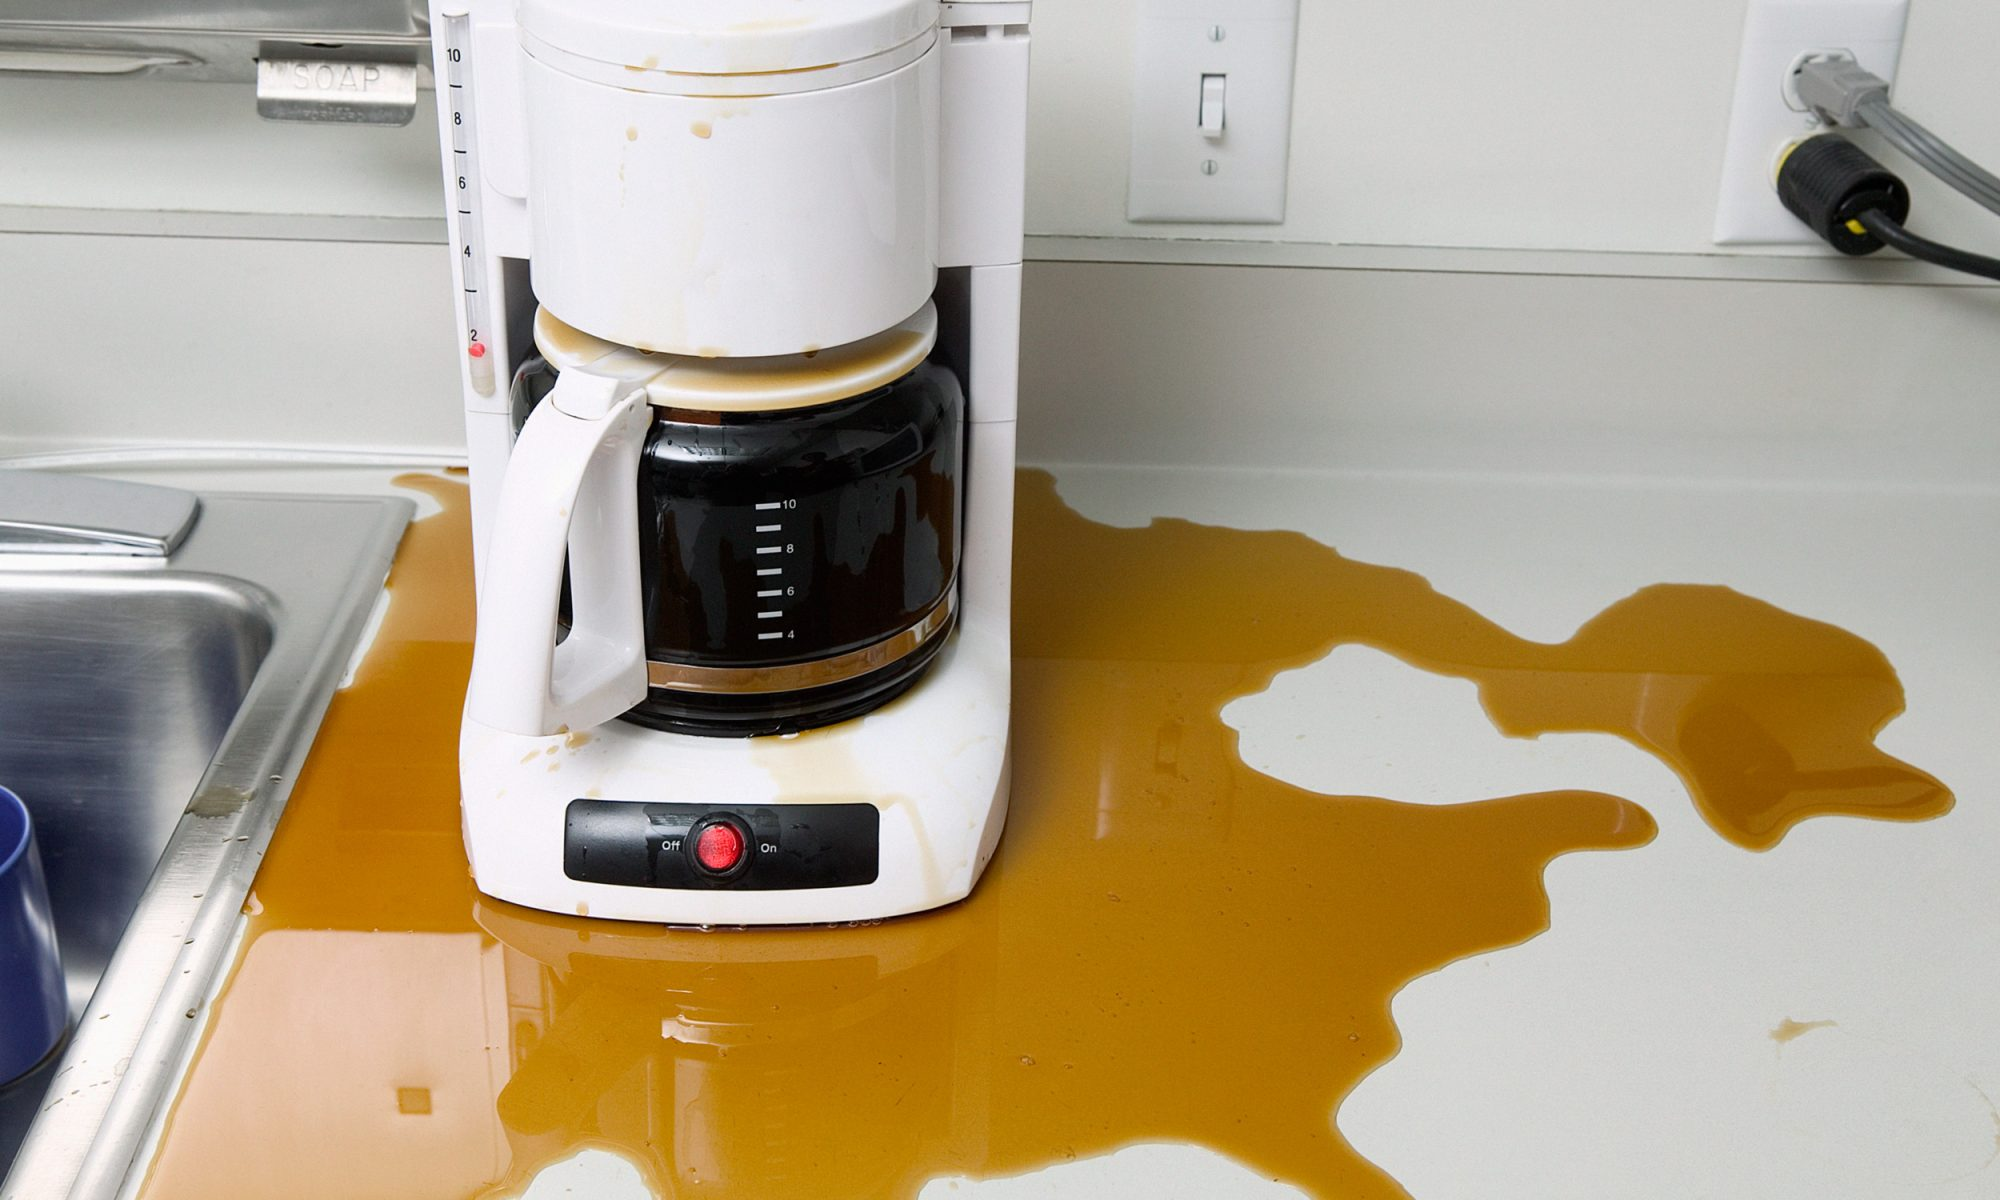 EC: How to Stop Your Coffee Maker from Overflowing